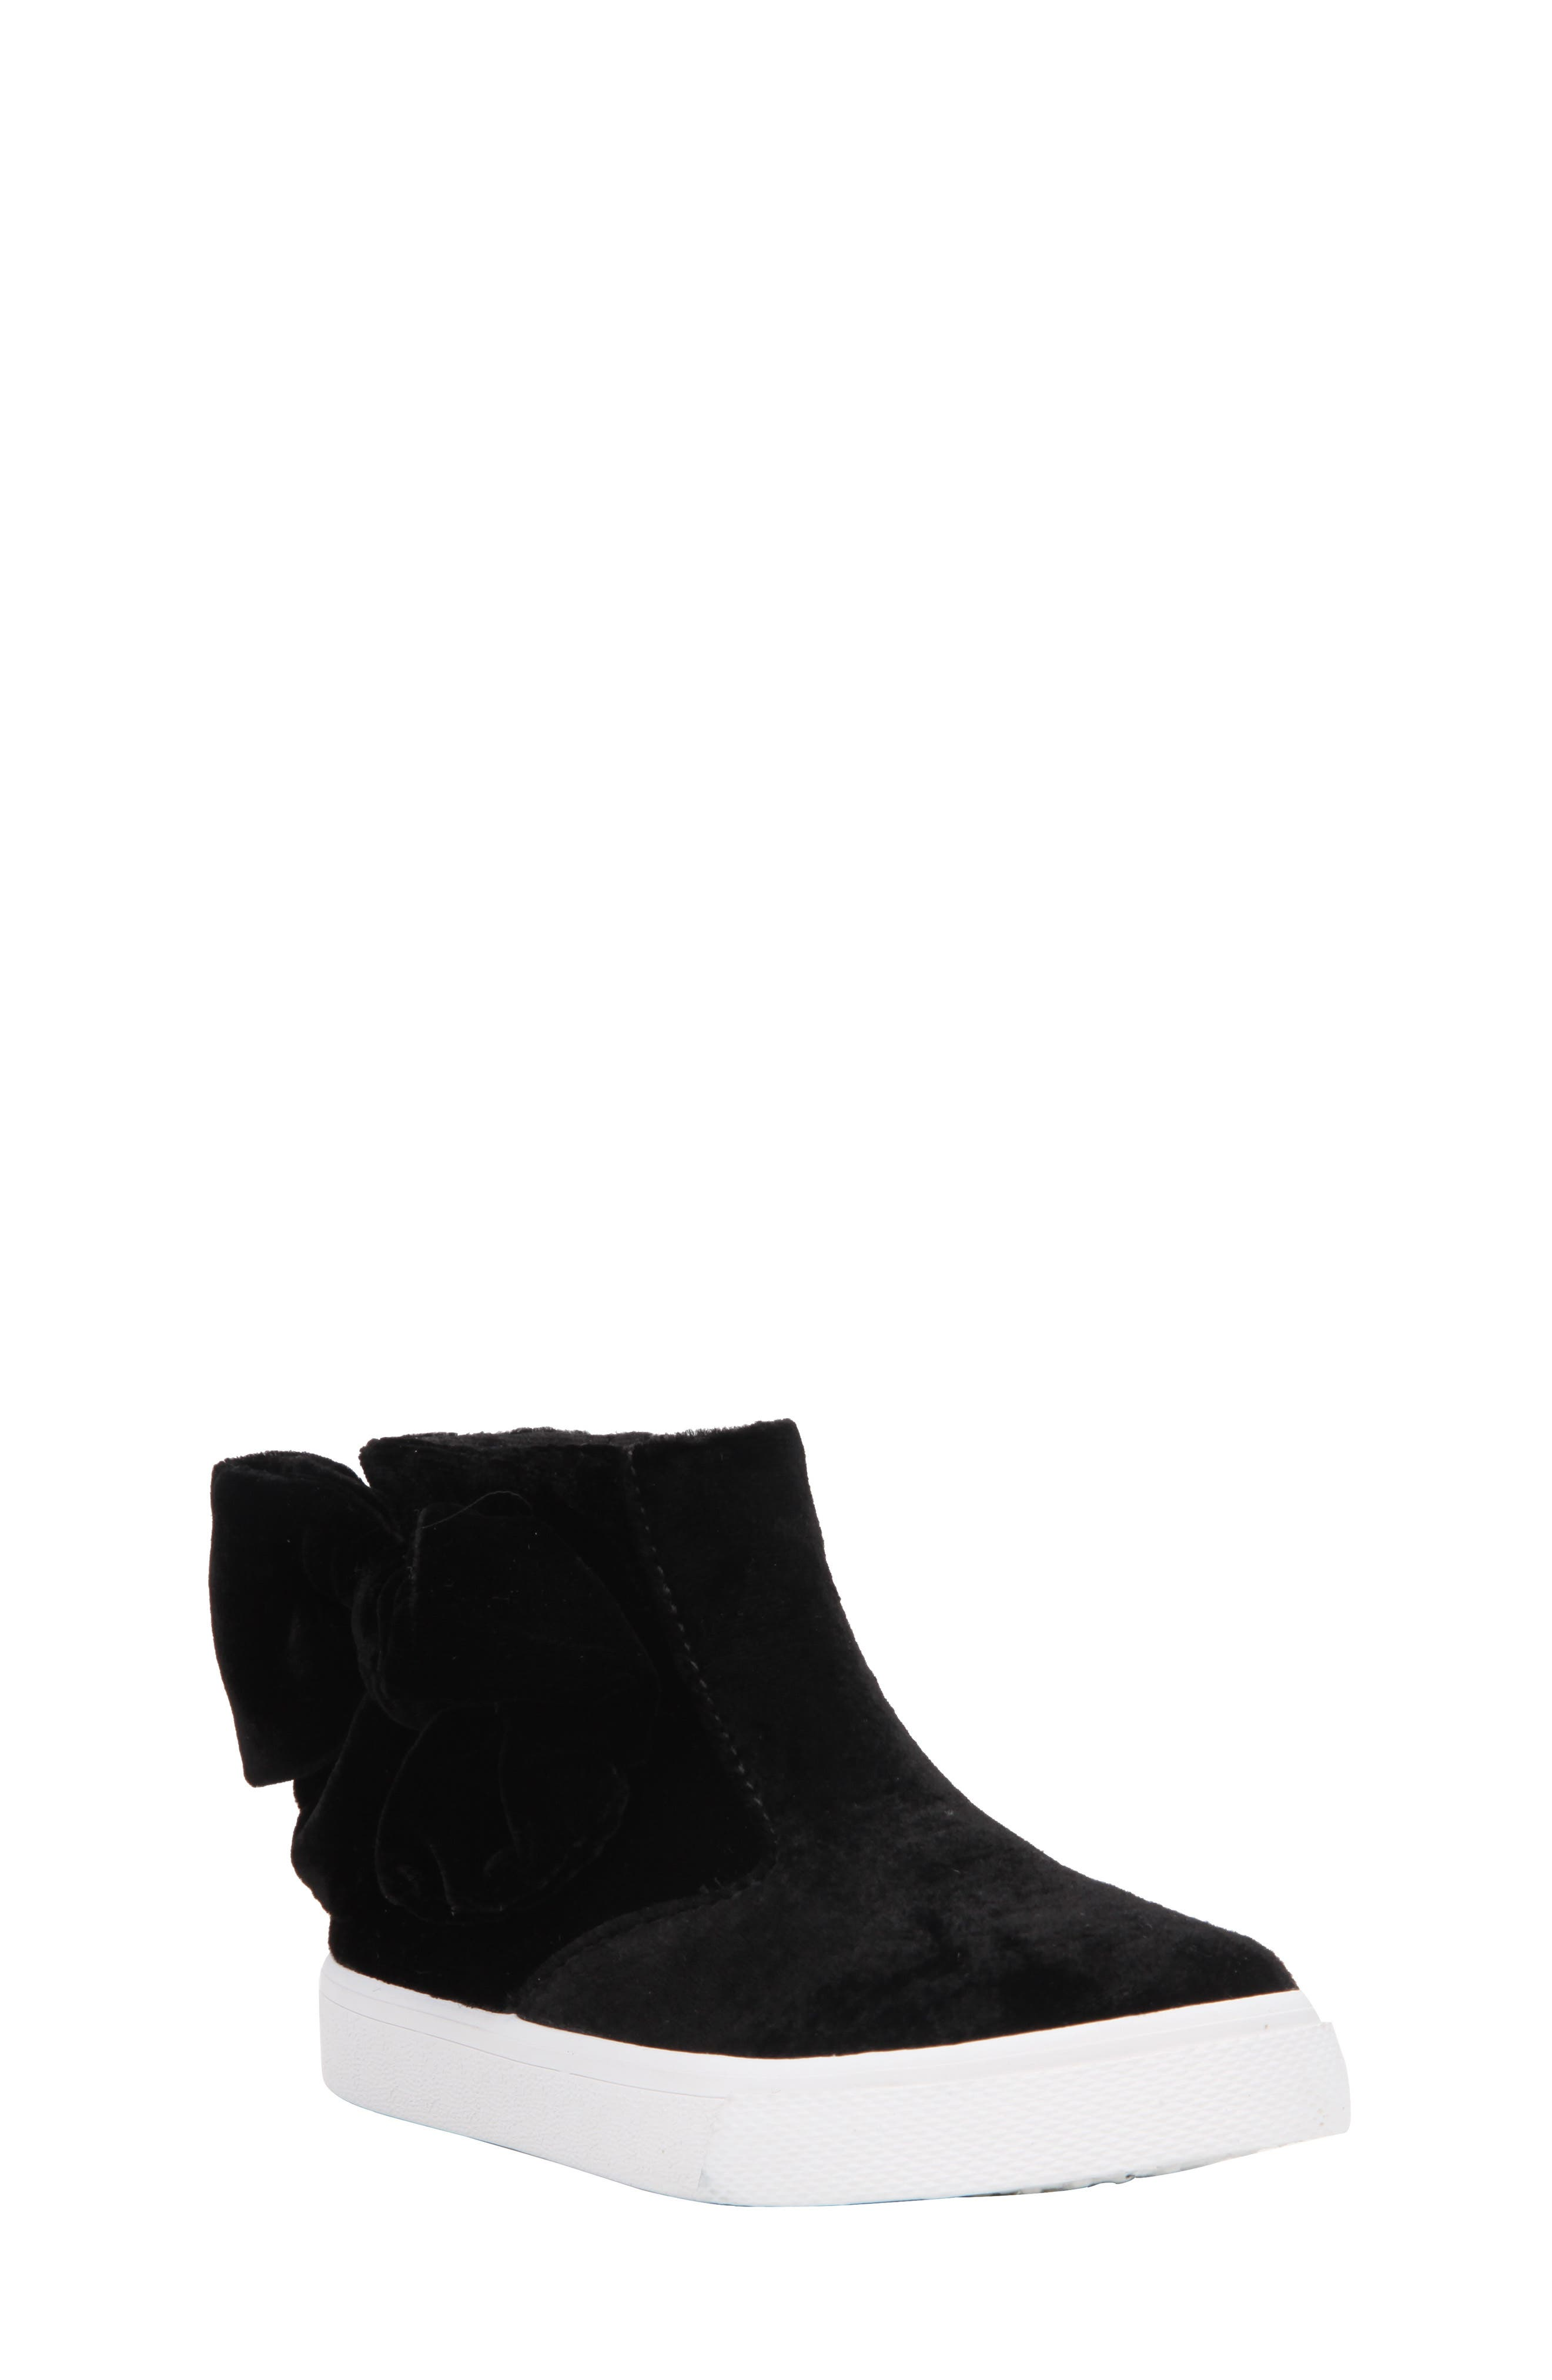 Harolyn Bow Bootie Sneaker,                             Main thumbnail 1, color,                             005